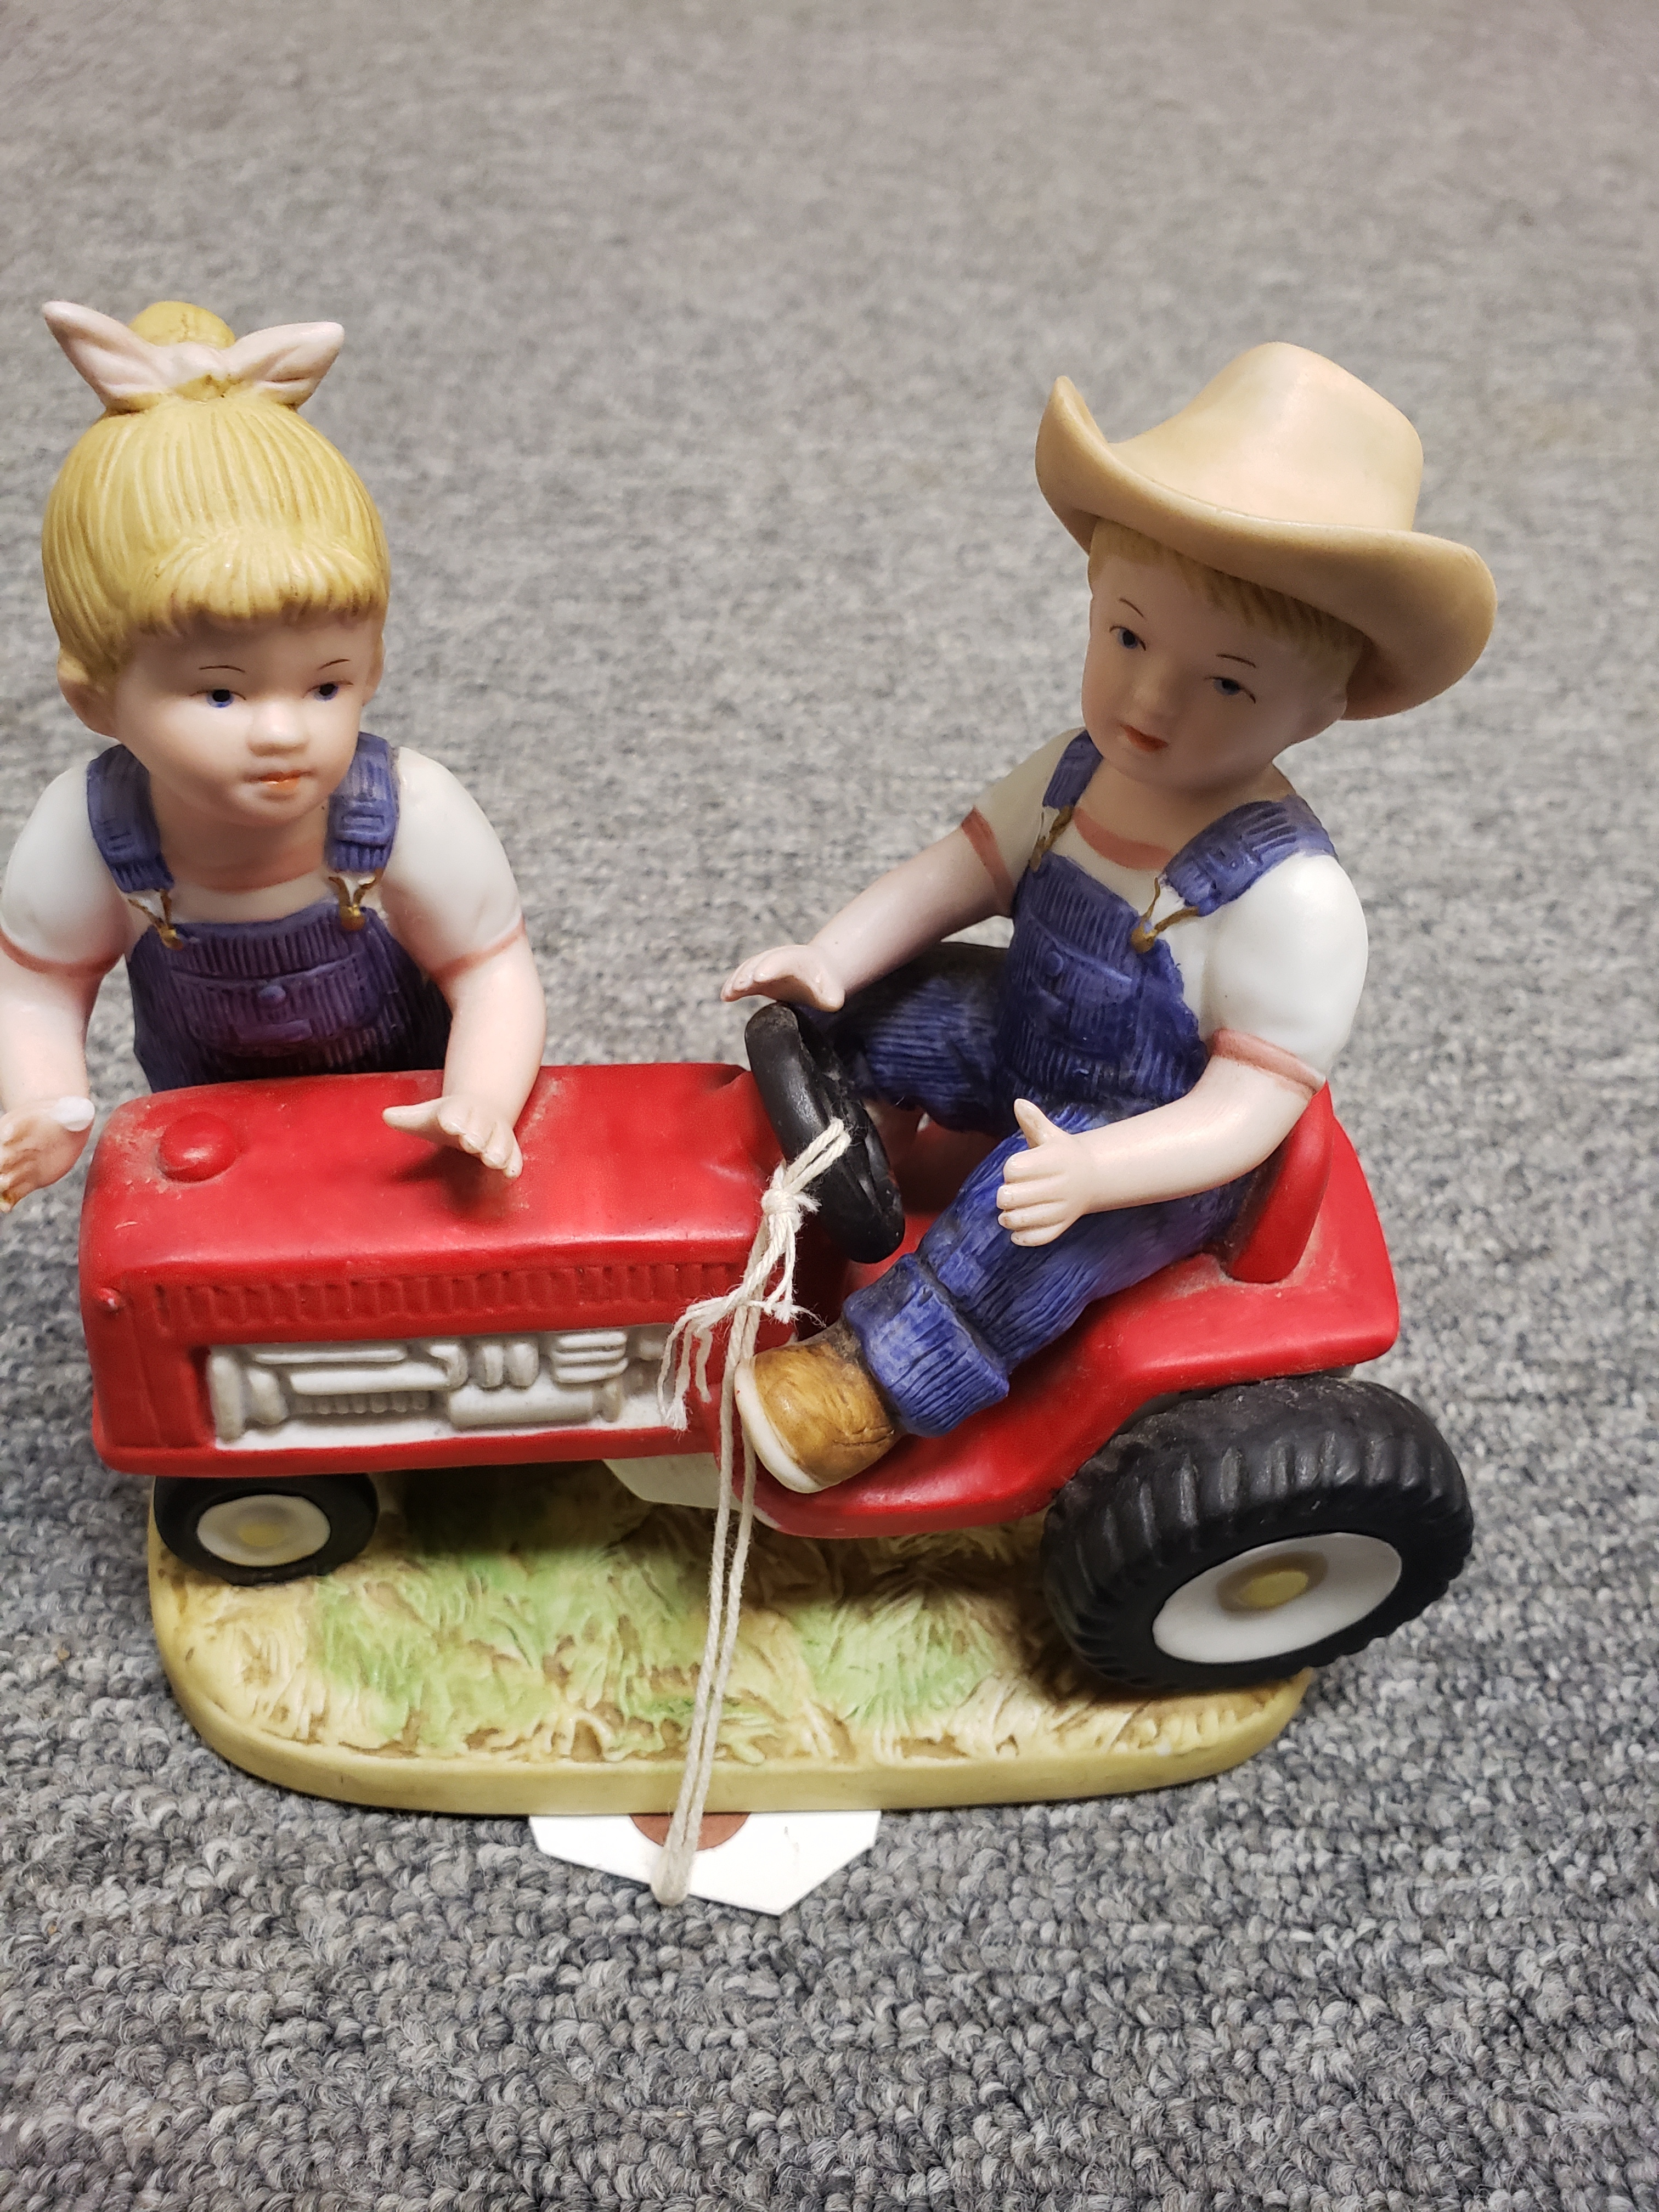 DENIM DAYS BY HOMCO - 1985 - 1525 - LITTLE BOY & GIRL W/ RED TRACTER